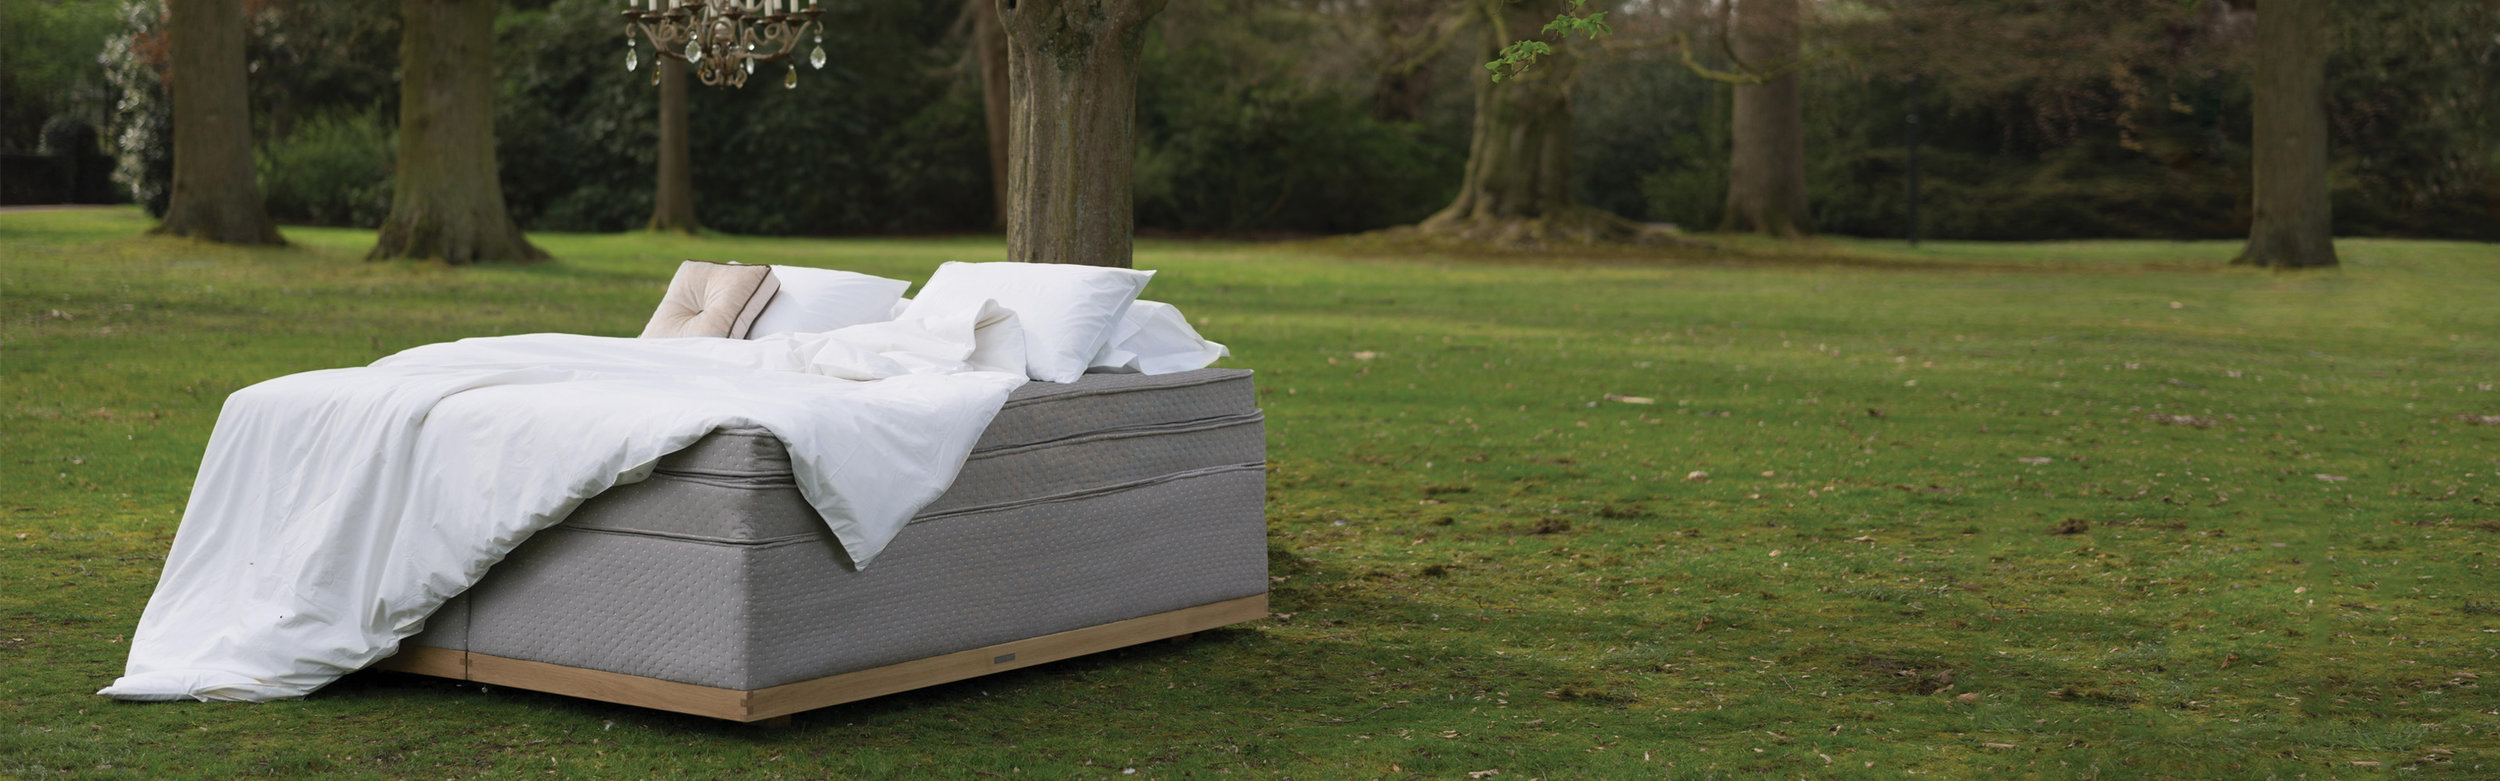 Cocomat's brand story talks about not just using natural materials but about bringing the positive energy of those materials to you to help you sleep.